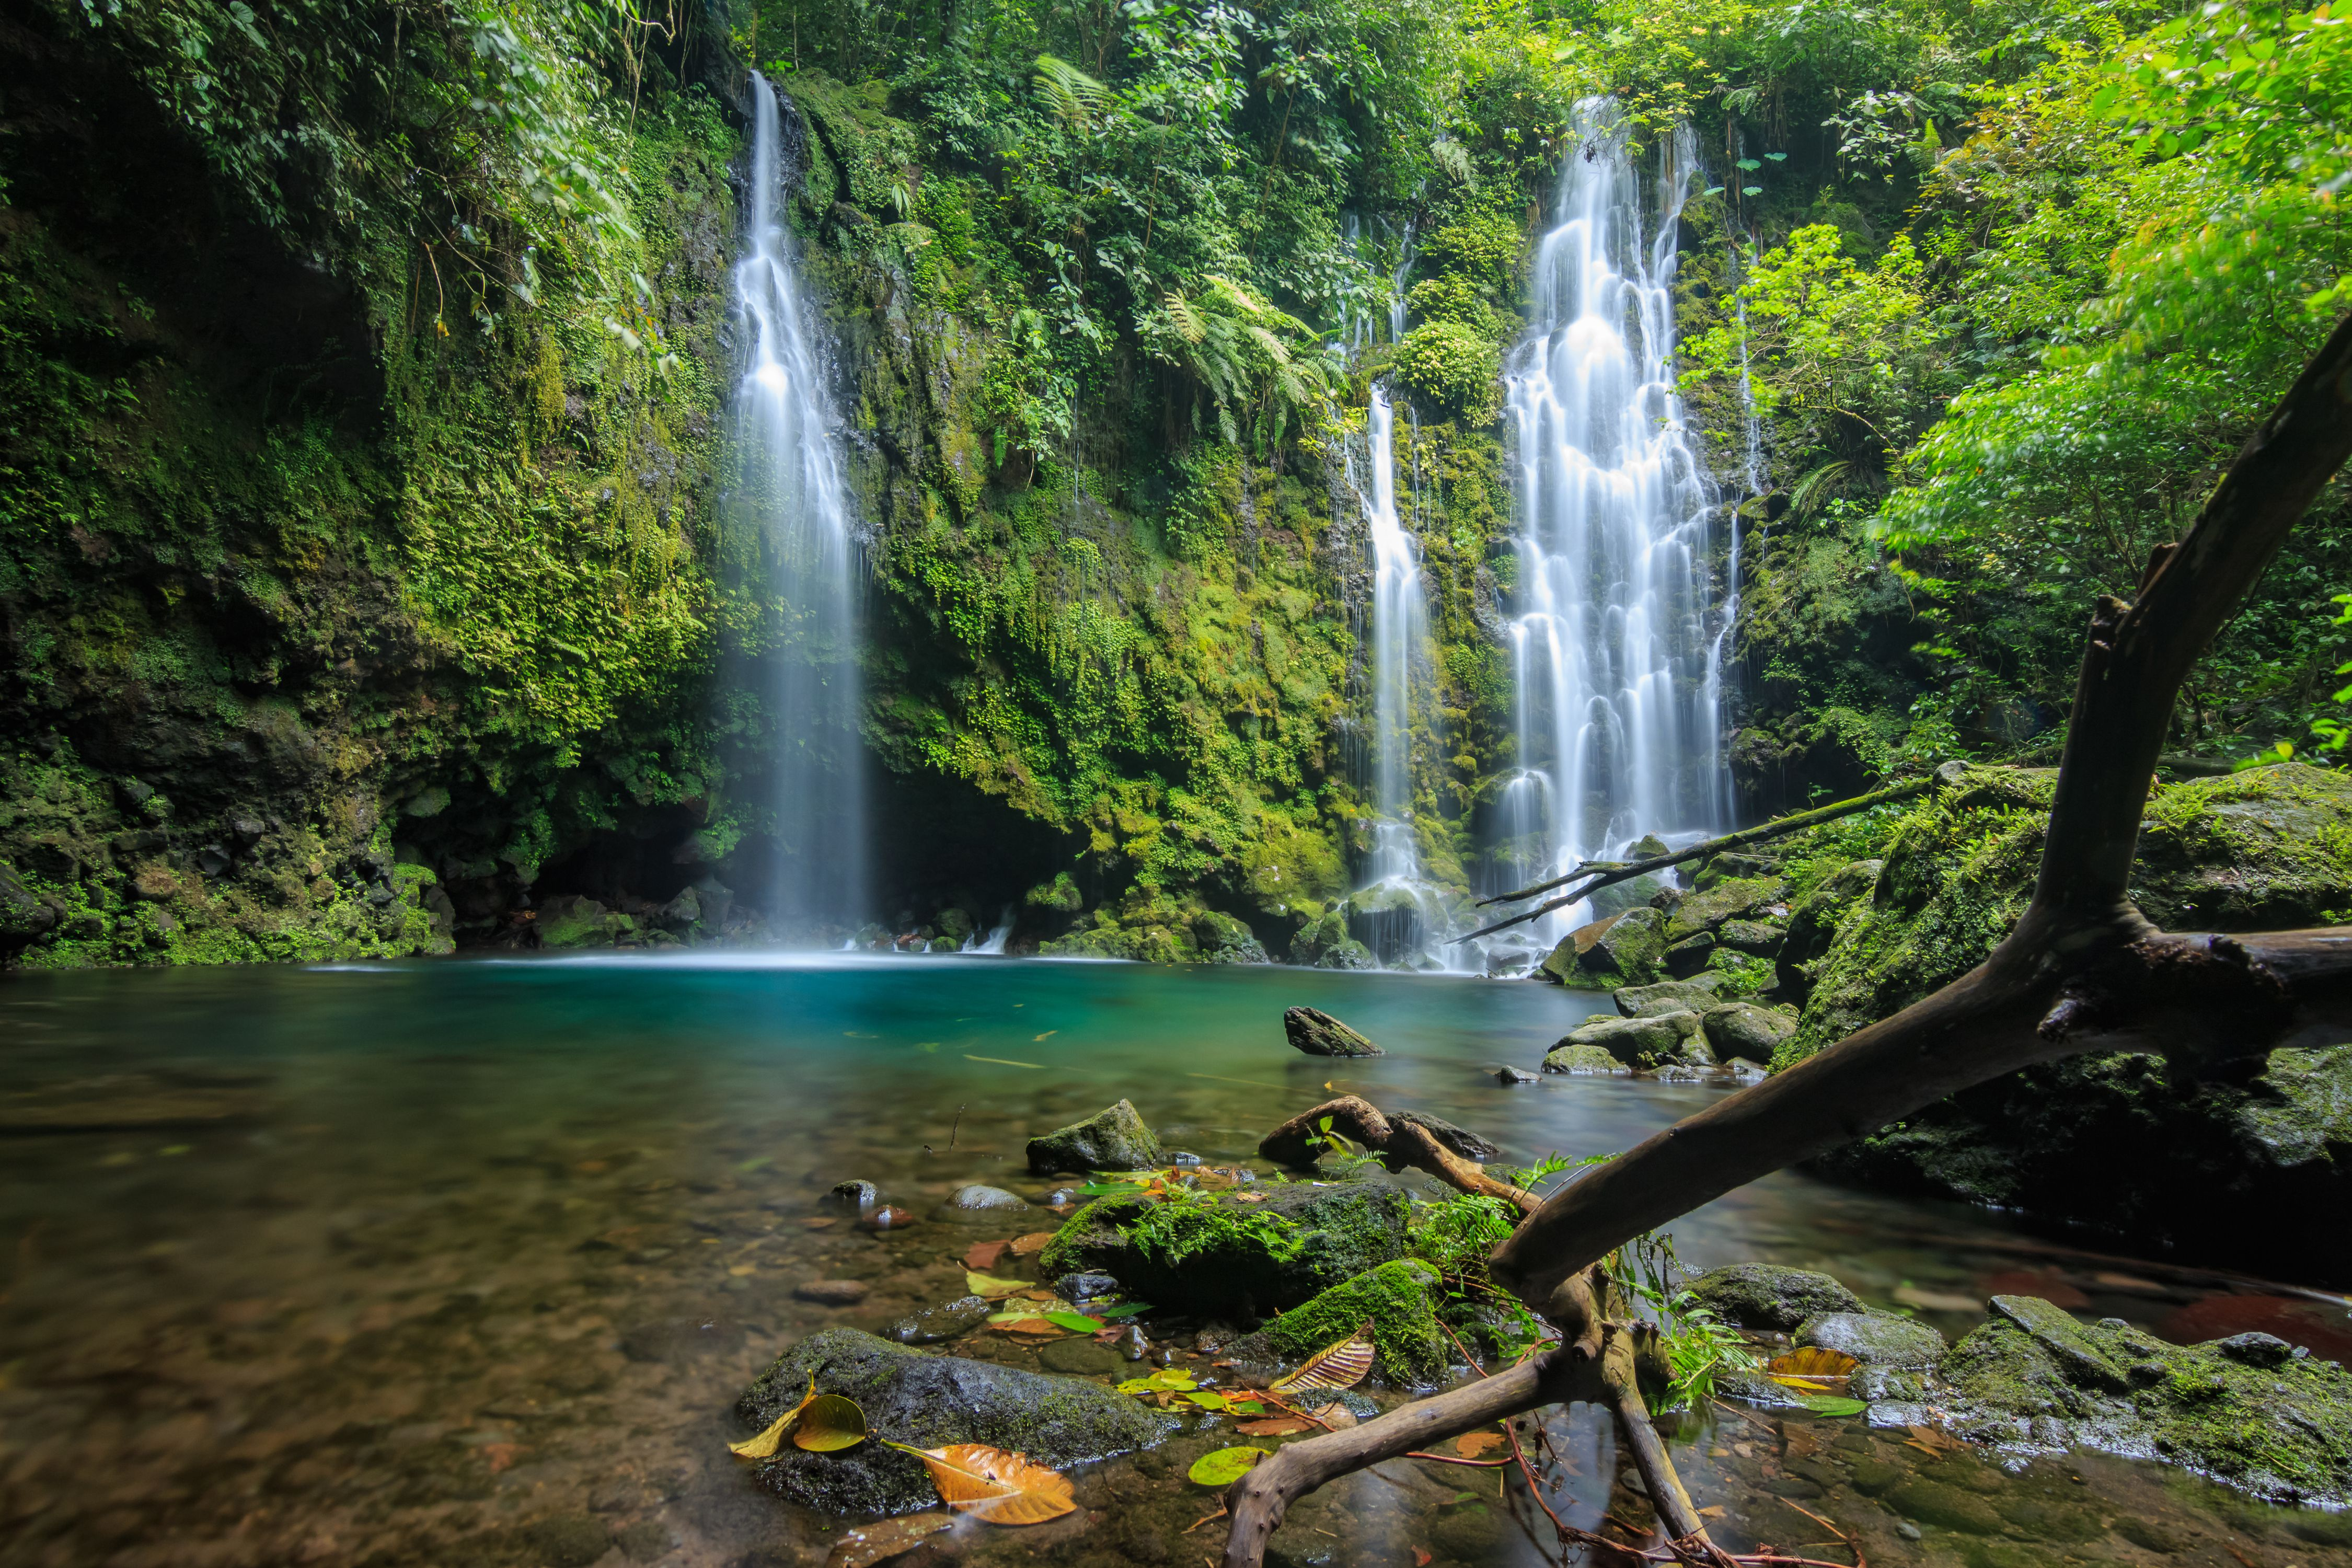 The Wild National Parks in Sumatra Are Home to Tigers and Orangutans!